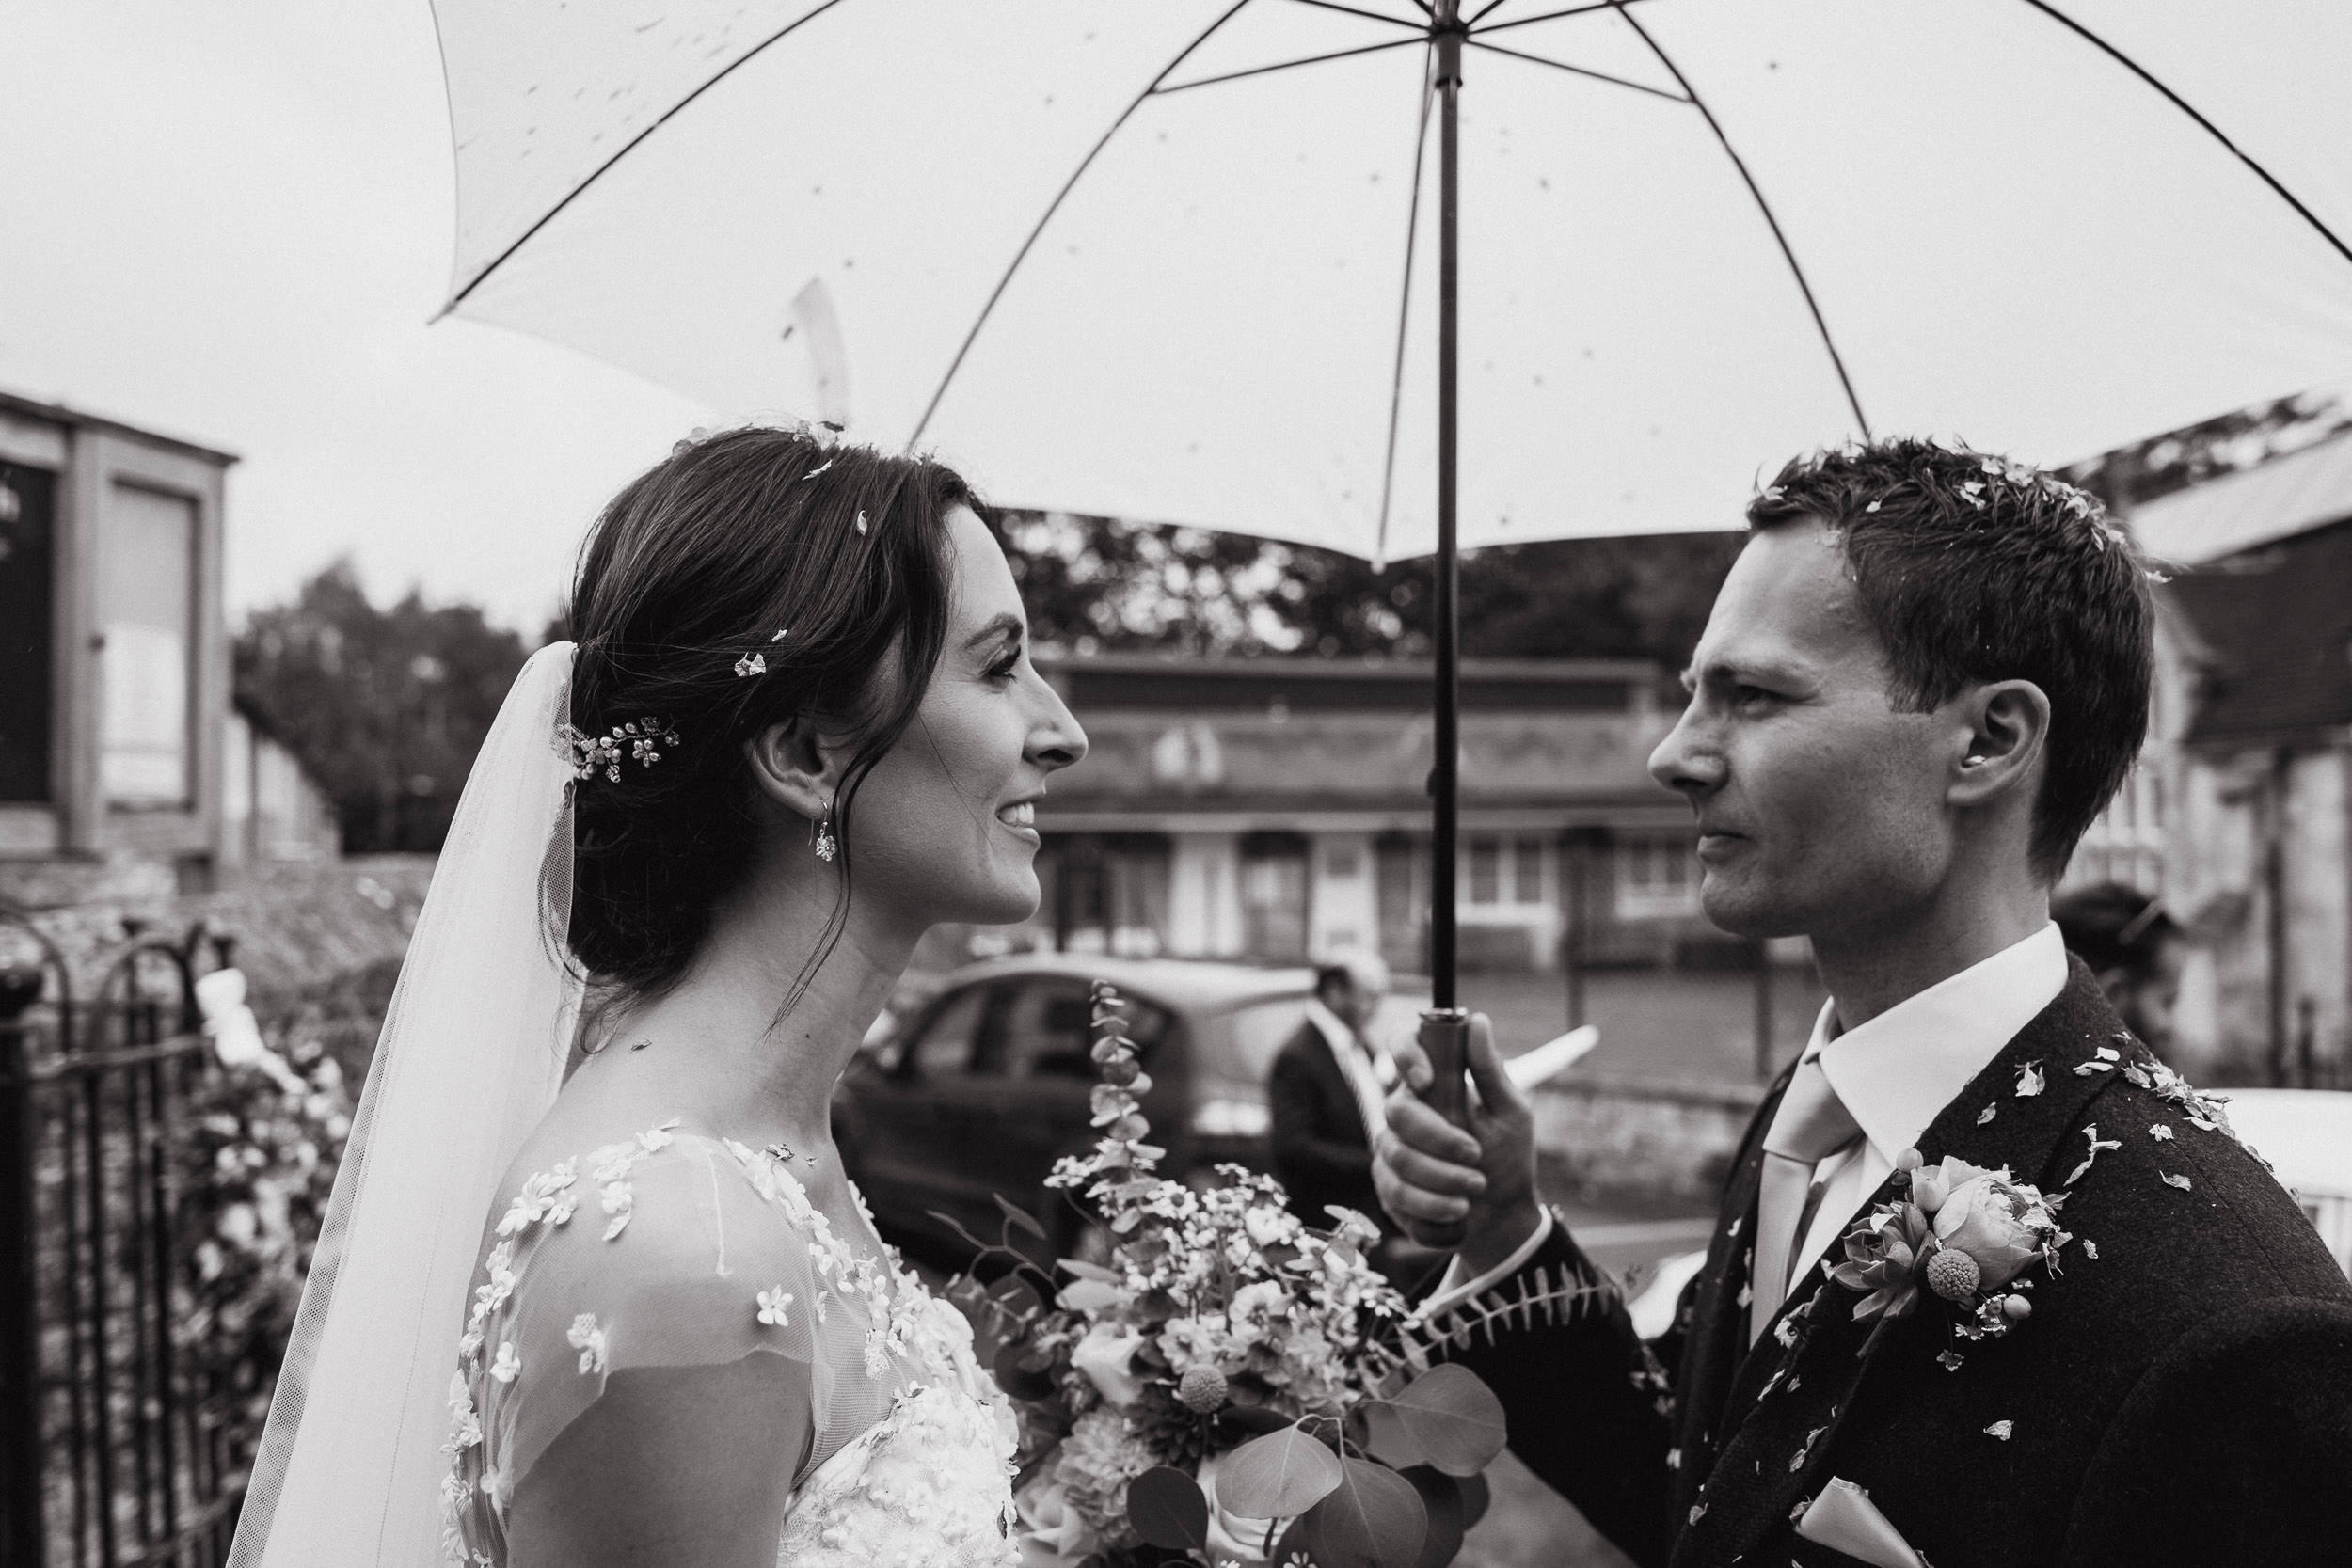 Orchardleigh Estate Wedding - Bride and Groom outside Church with Umbrellas